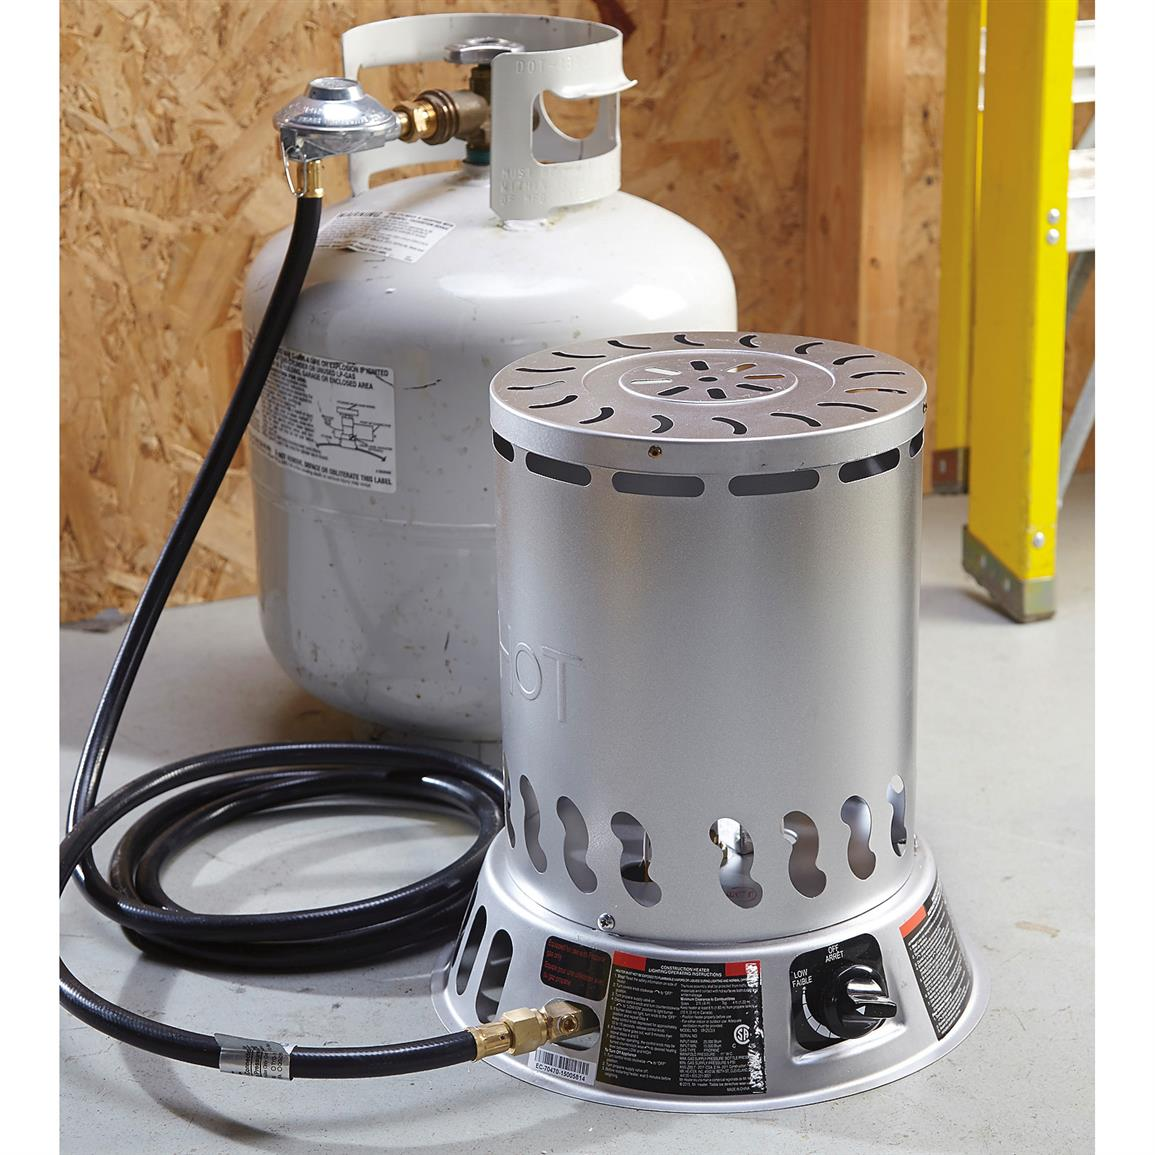 Propane heaters for garage garage design ideas for Best propane heating systems